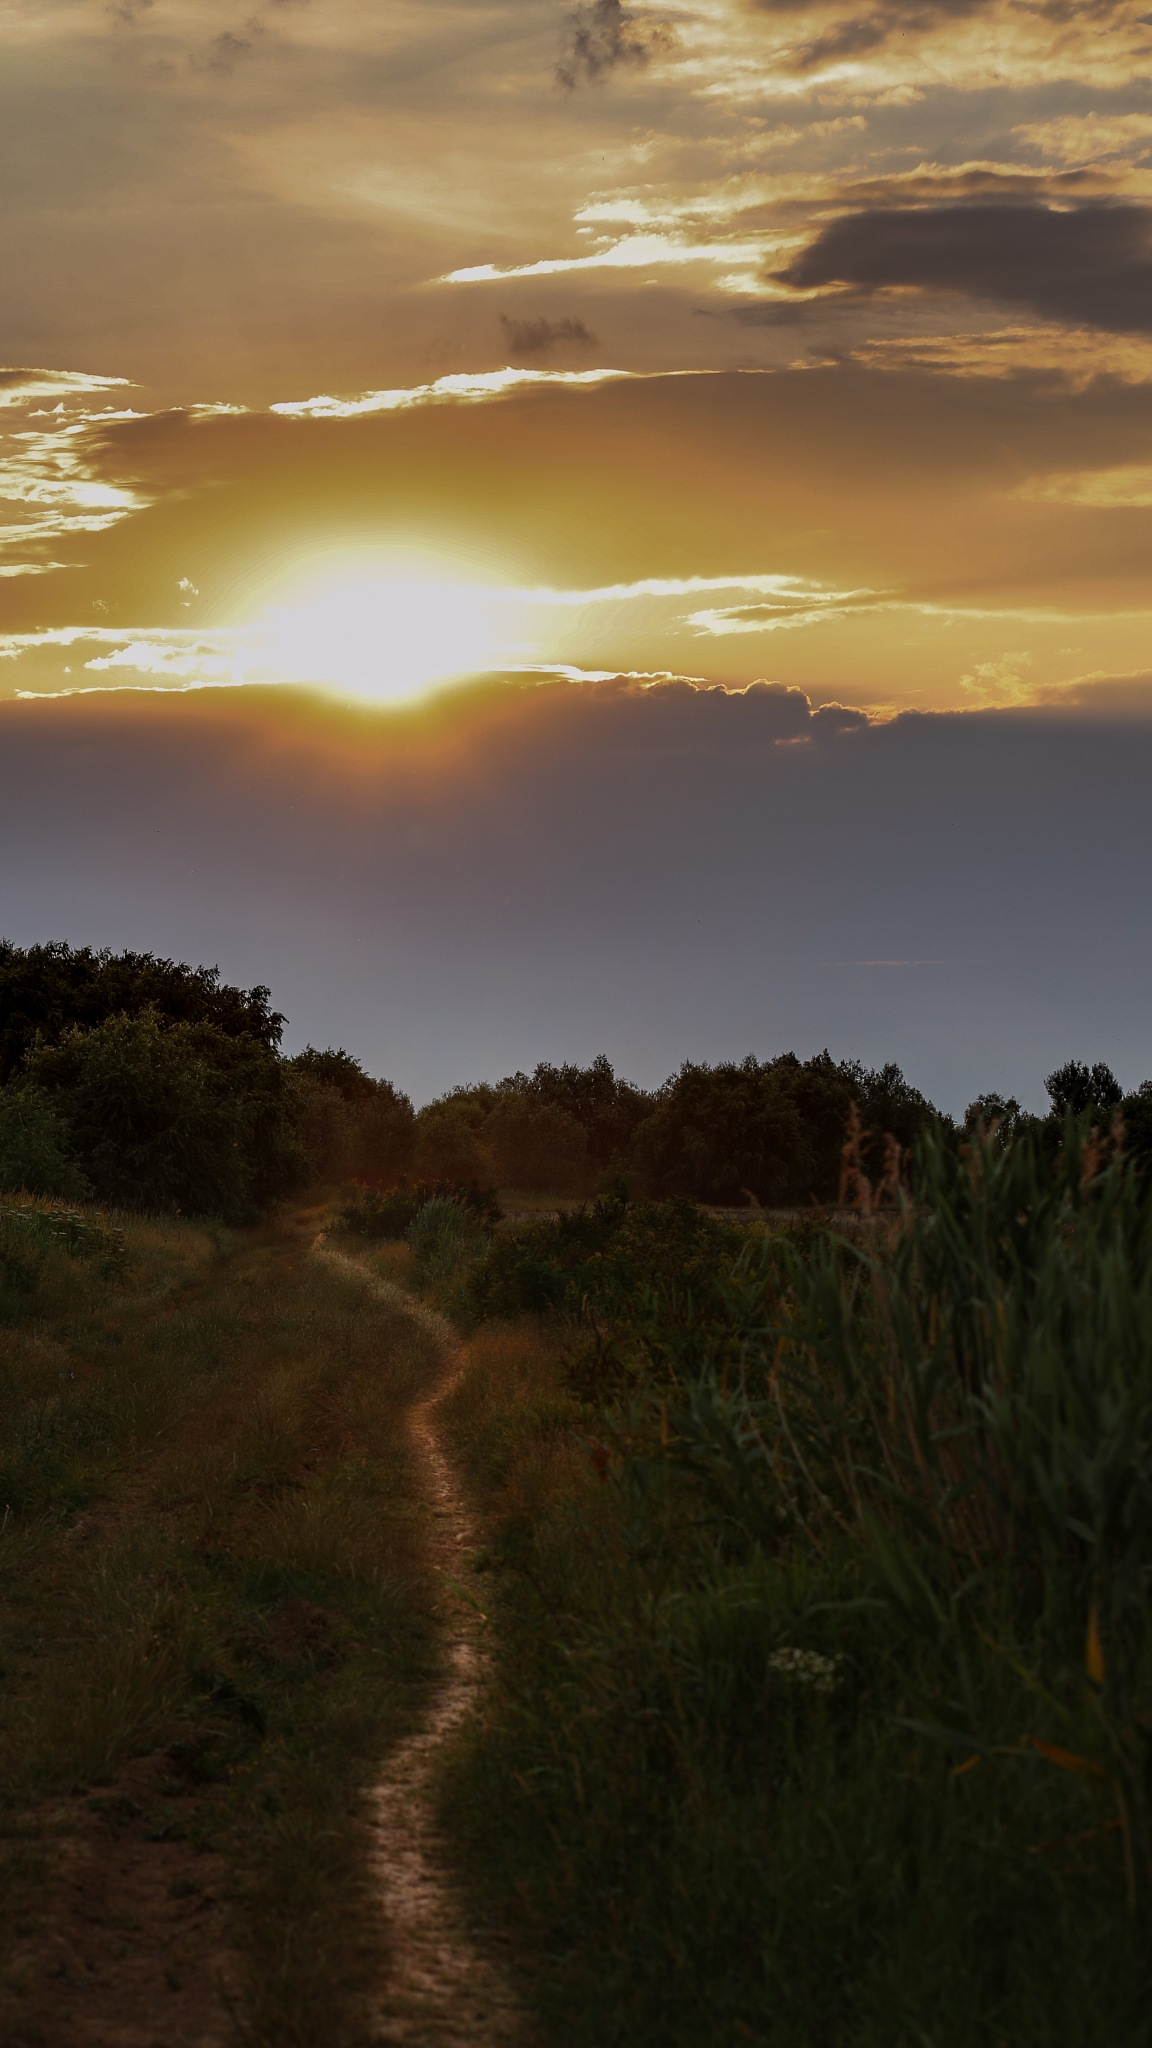 At sunset On the roads of Bucharest by Costy Pirvu